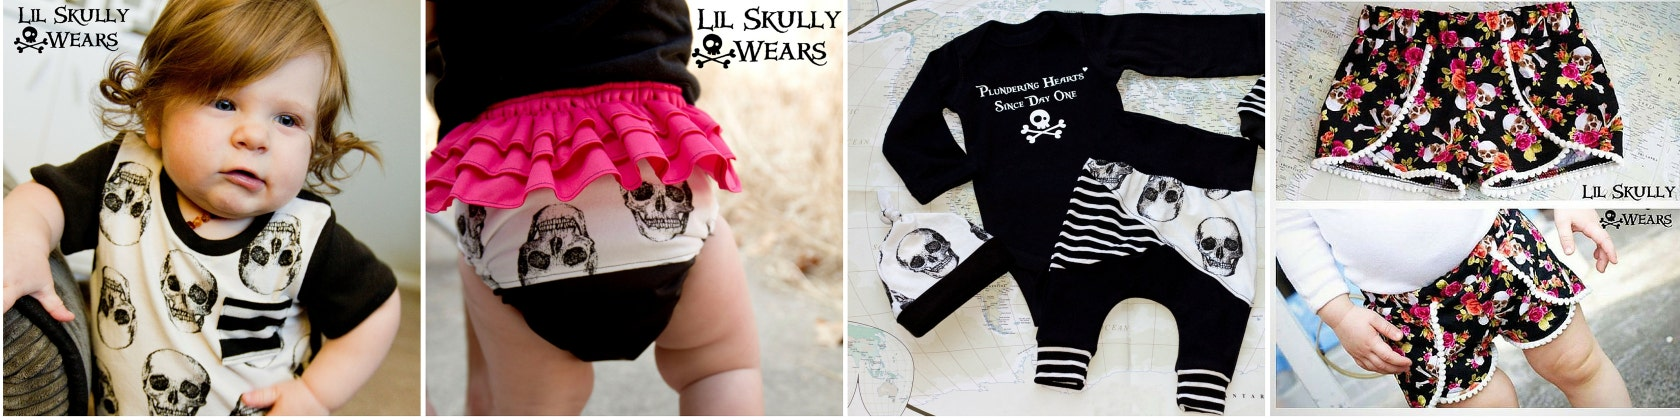 Welcome To Lil Skully Wears Skull Pirates And Par